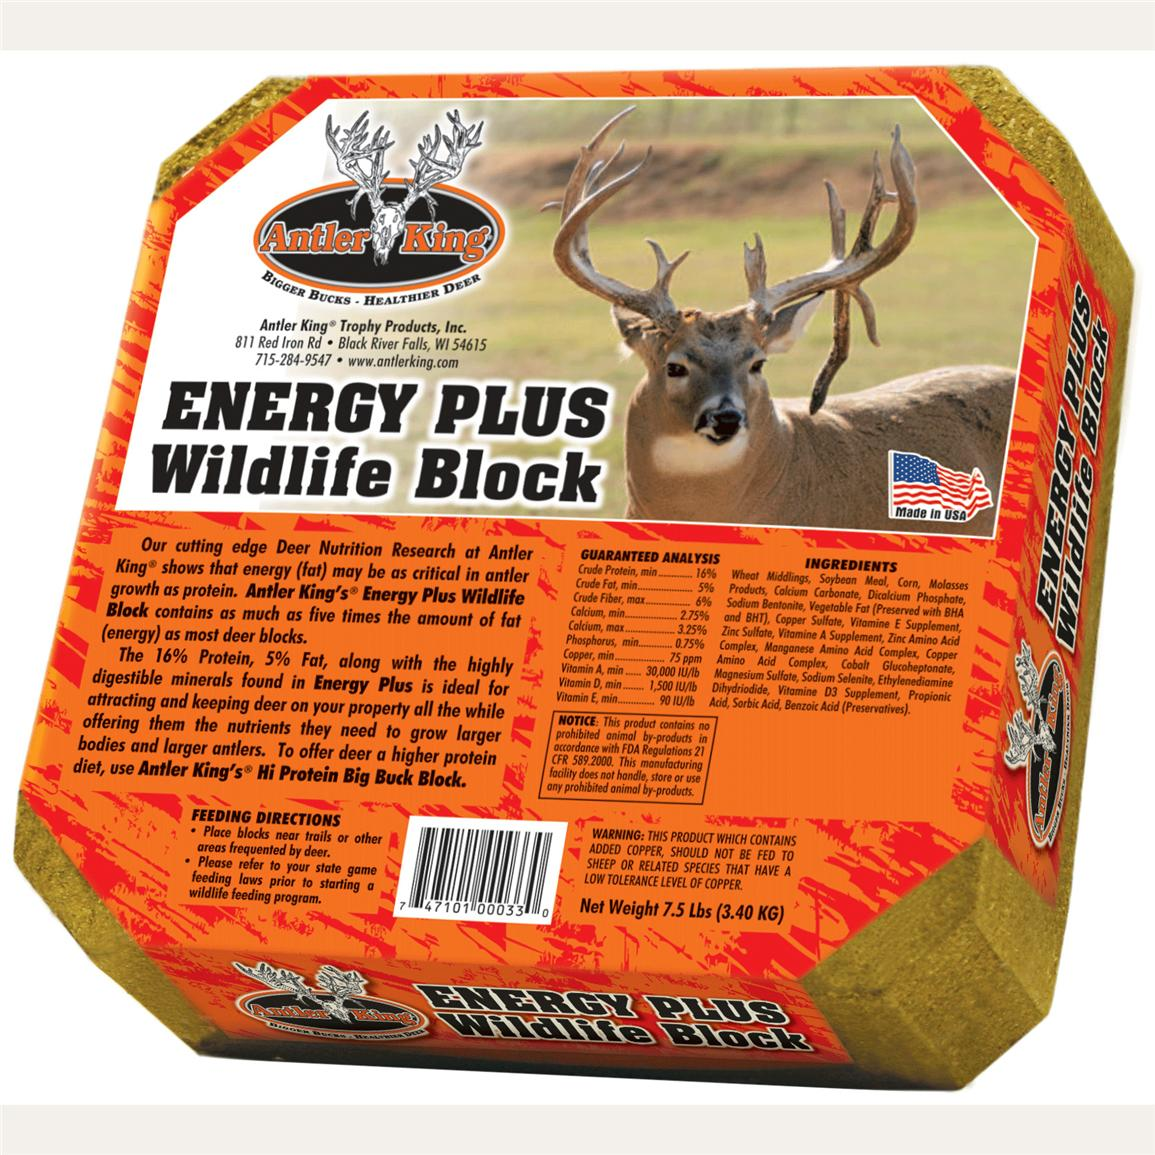 Antler King Energy Plus Wildlife Blocks, 7.5 lb., 2 Pack